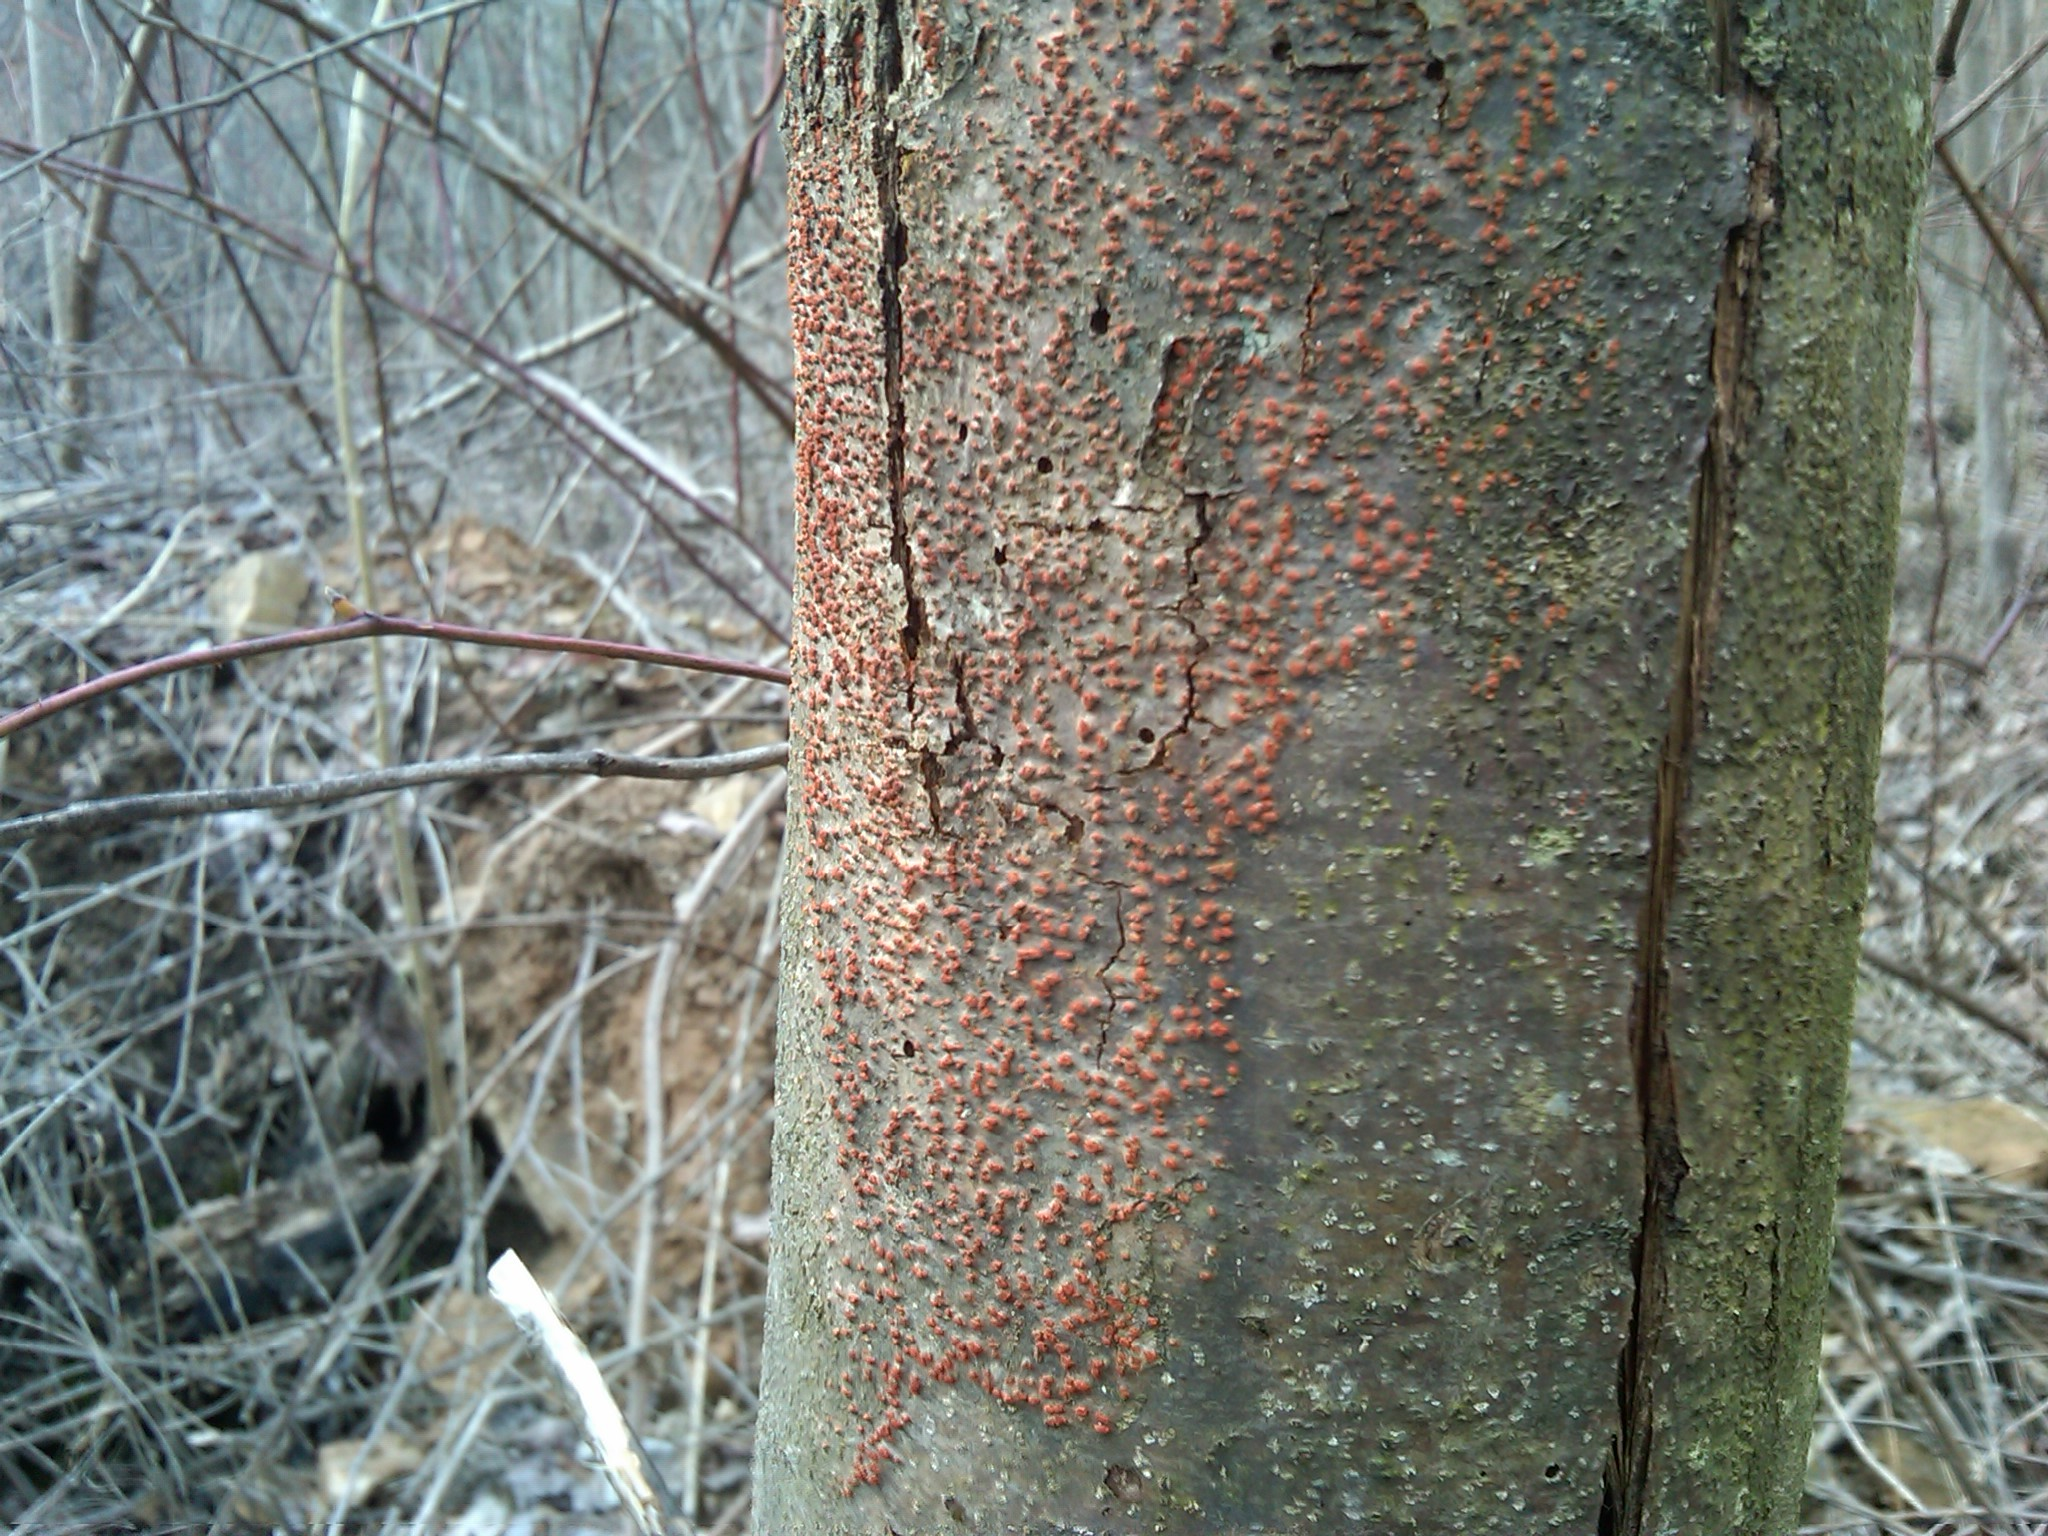 Image of Chestnut blight